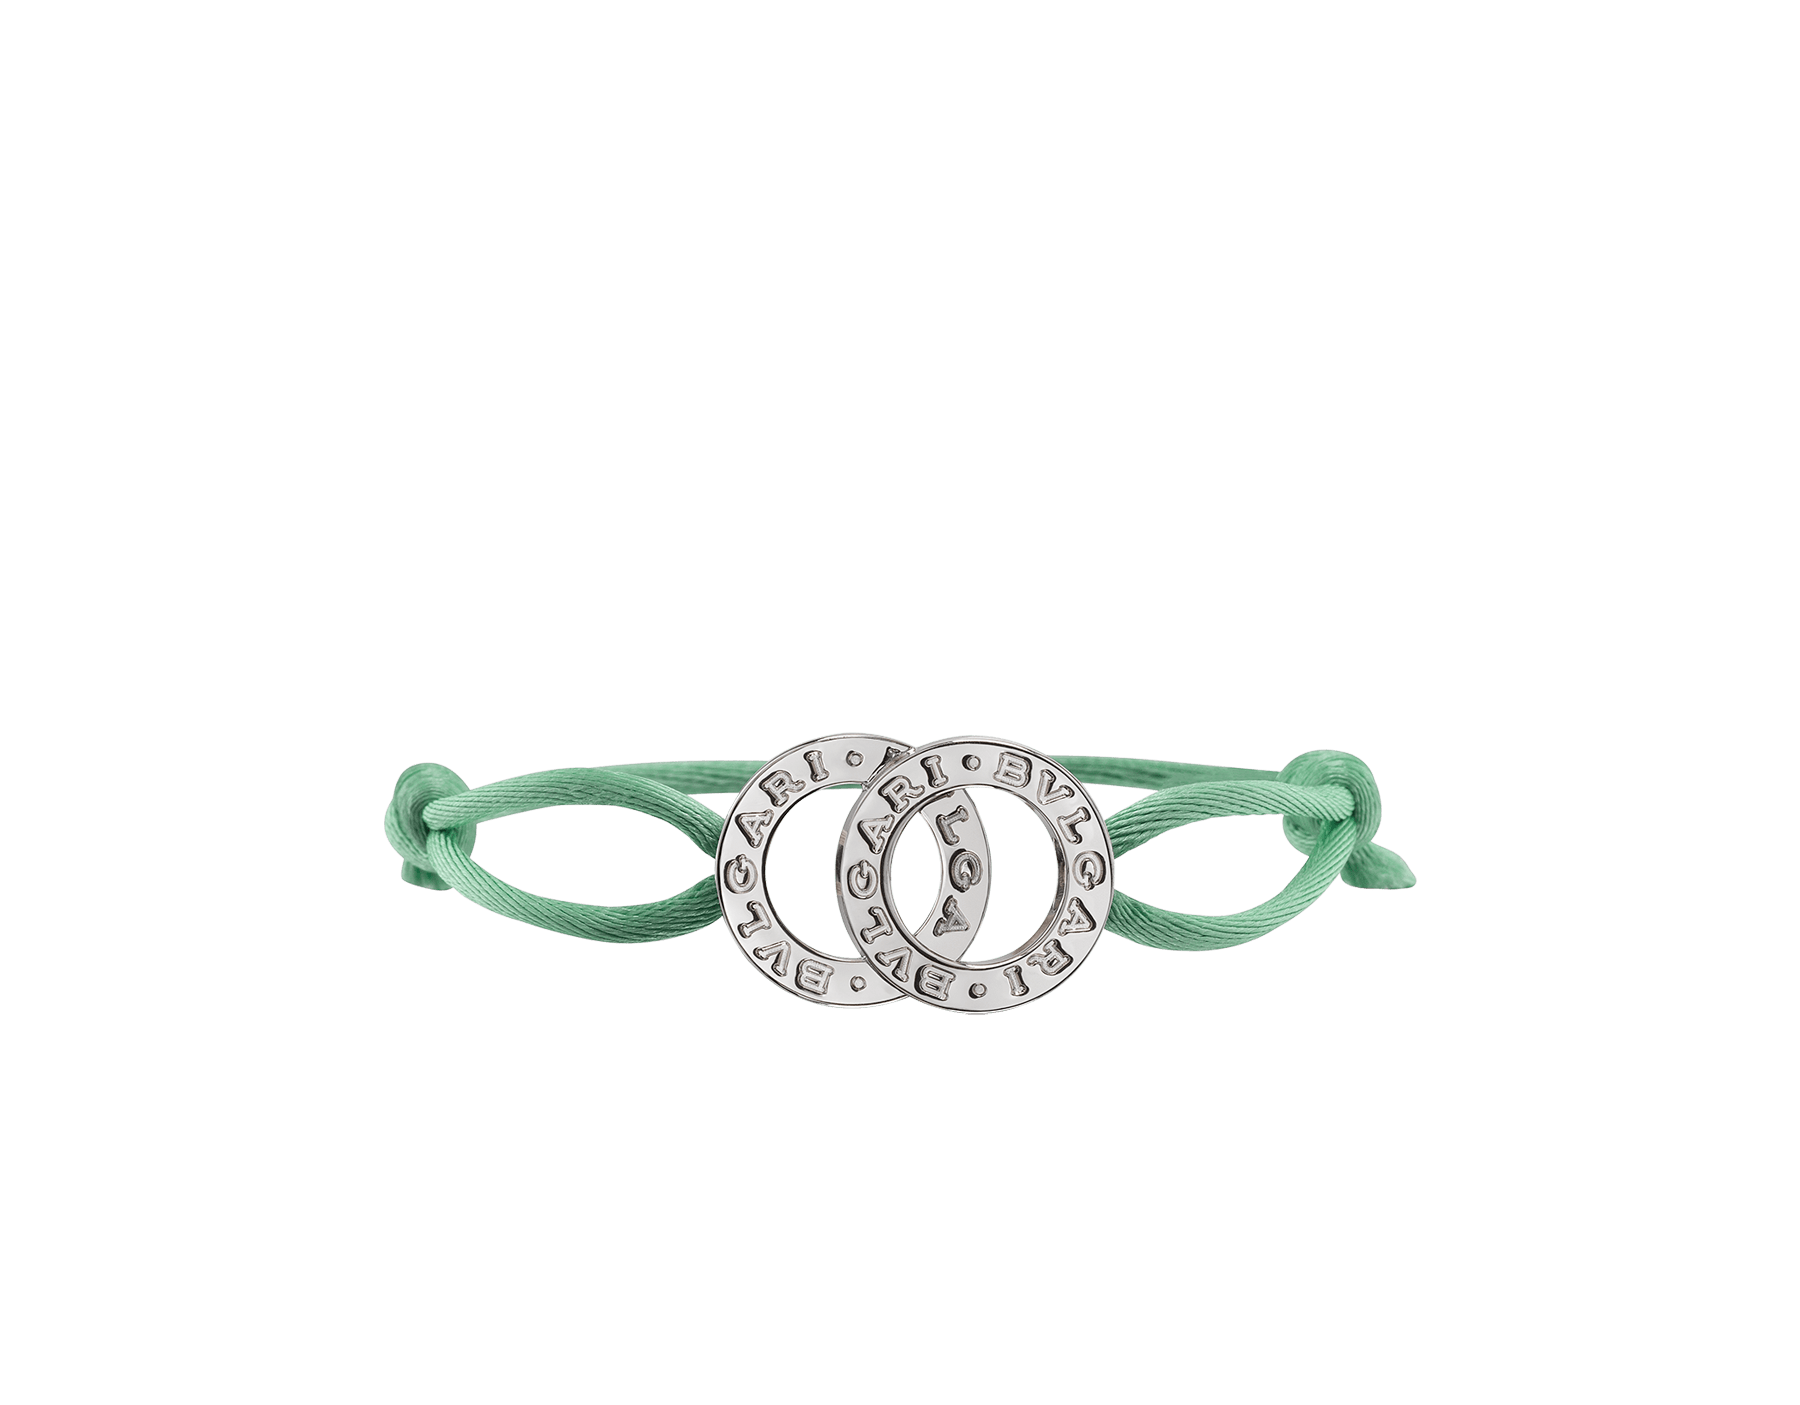 BVLGARI BVLGARI bracelet in tropical tourquoise fabric with an iconic double logo décor in sterling silver. 288453 image 1